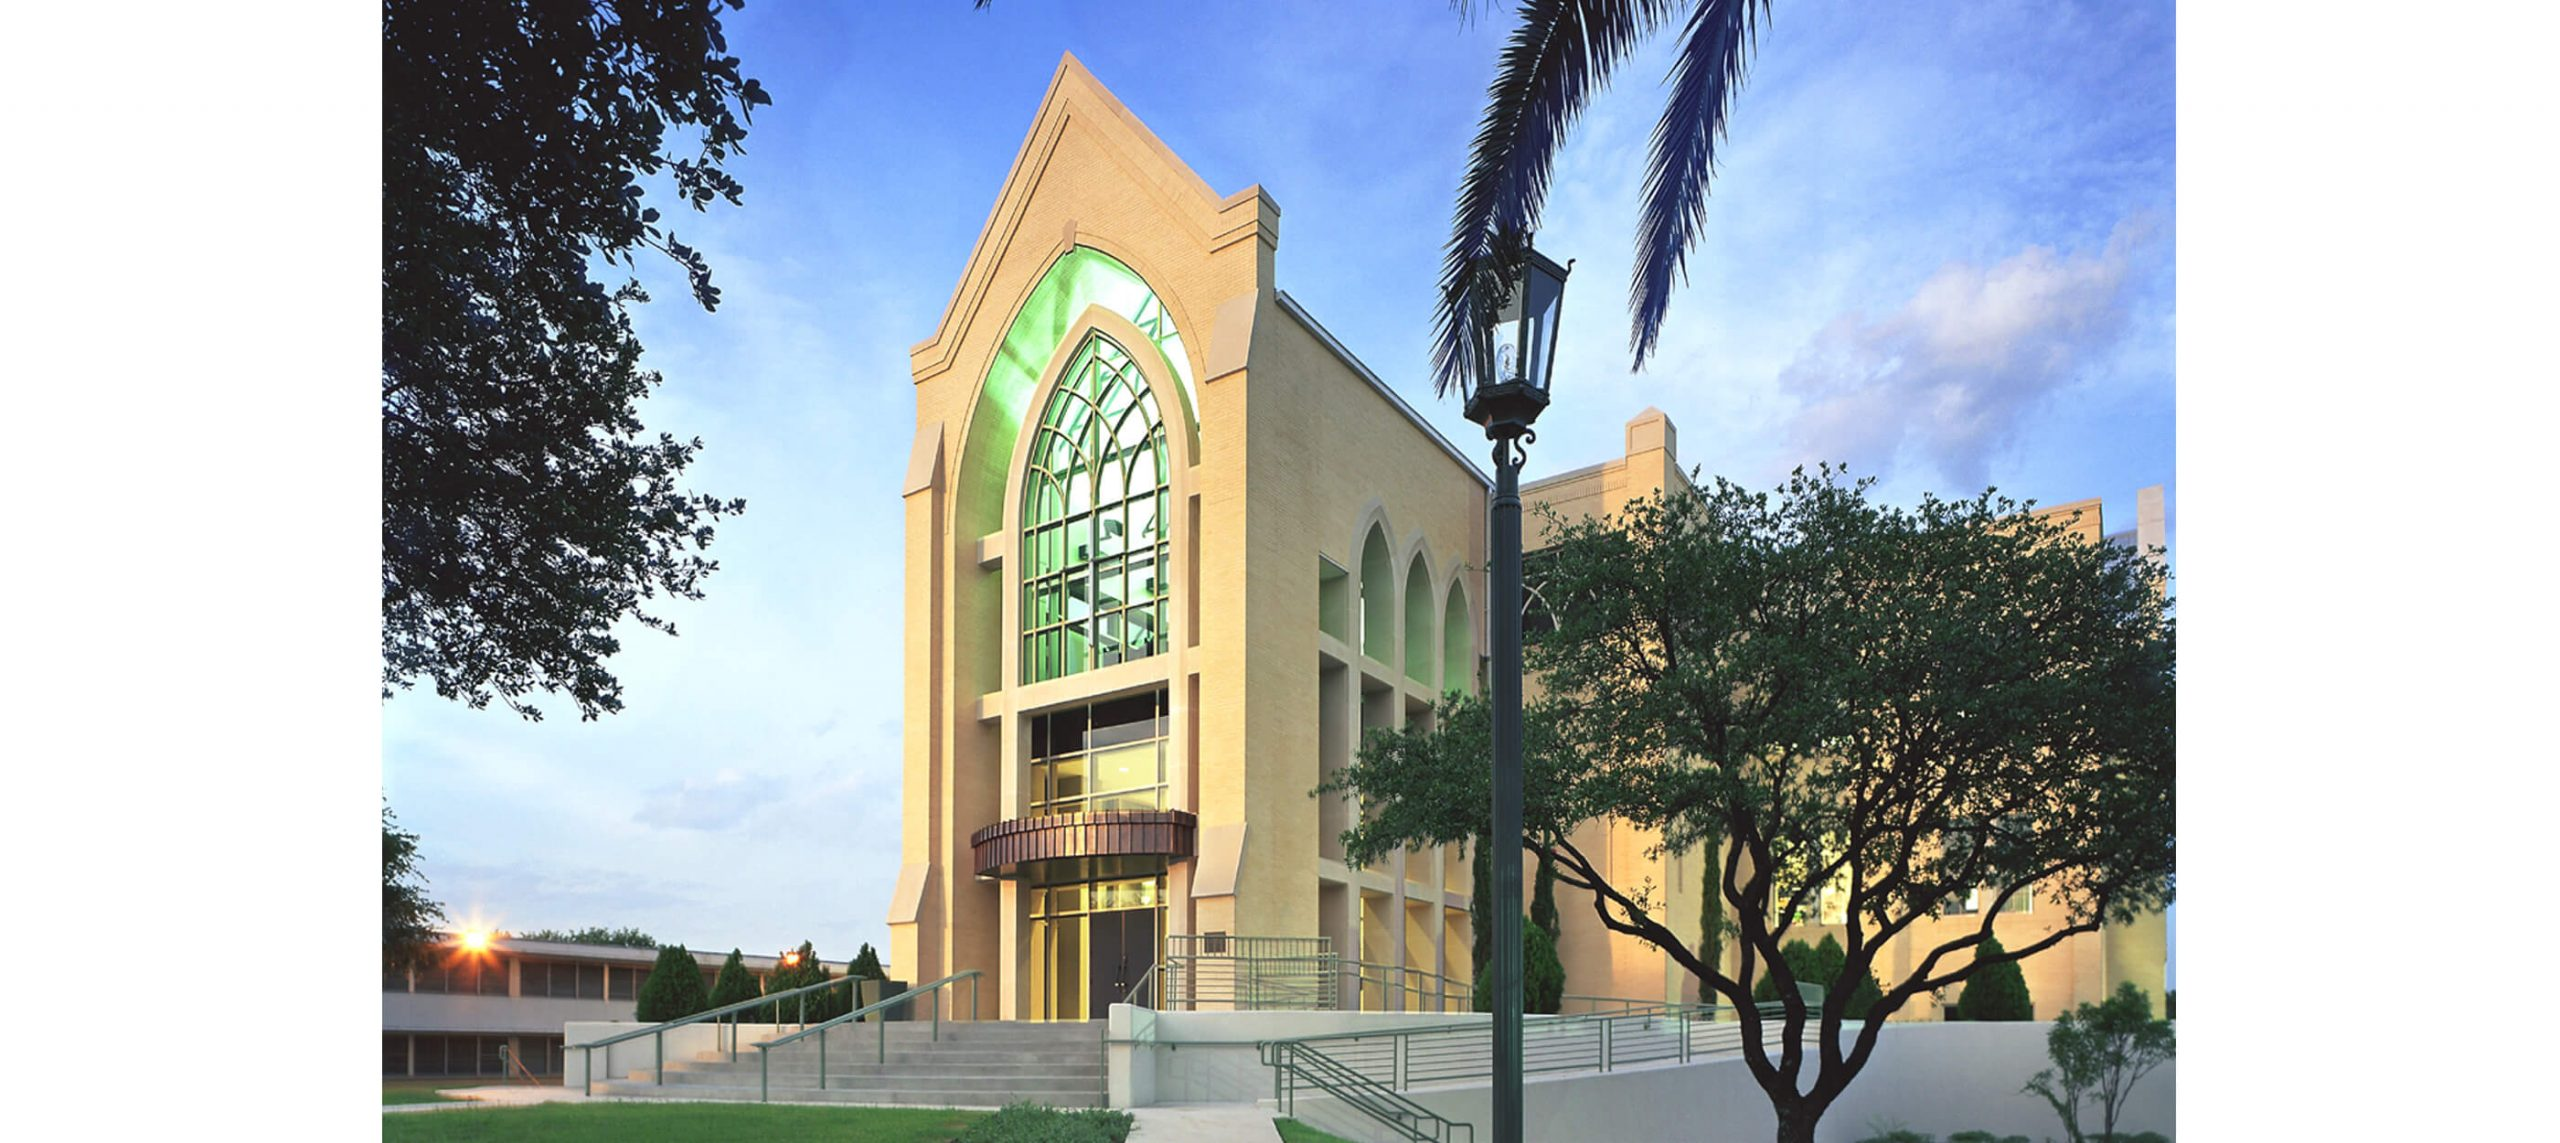 Our Lady of the Lake University 1